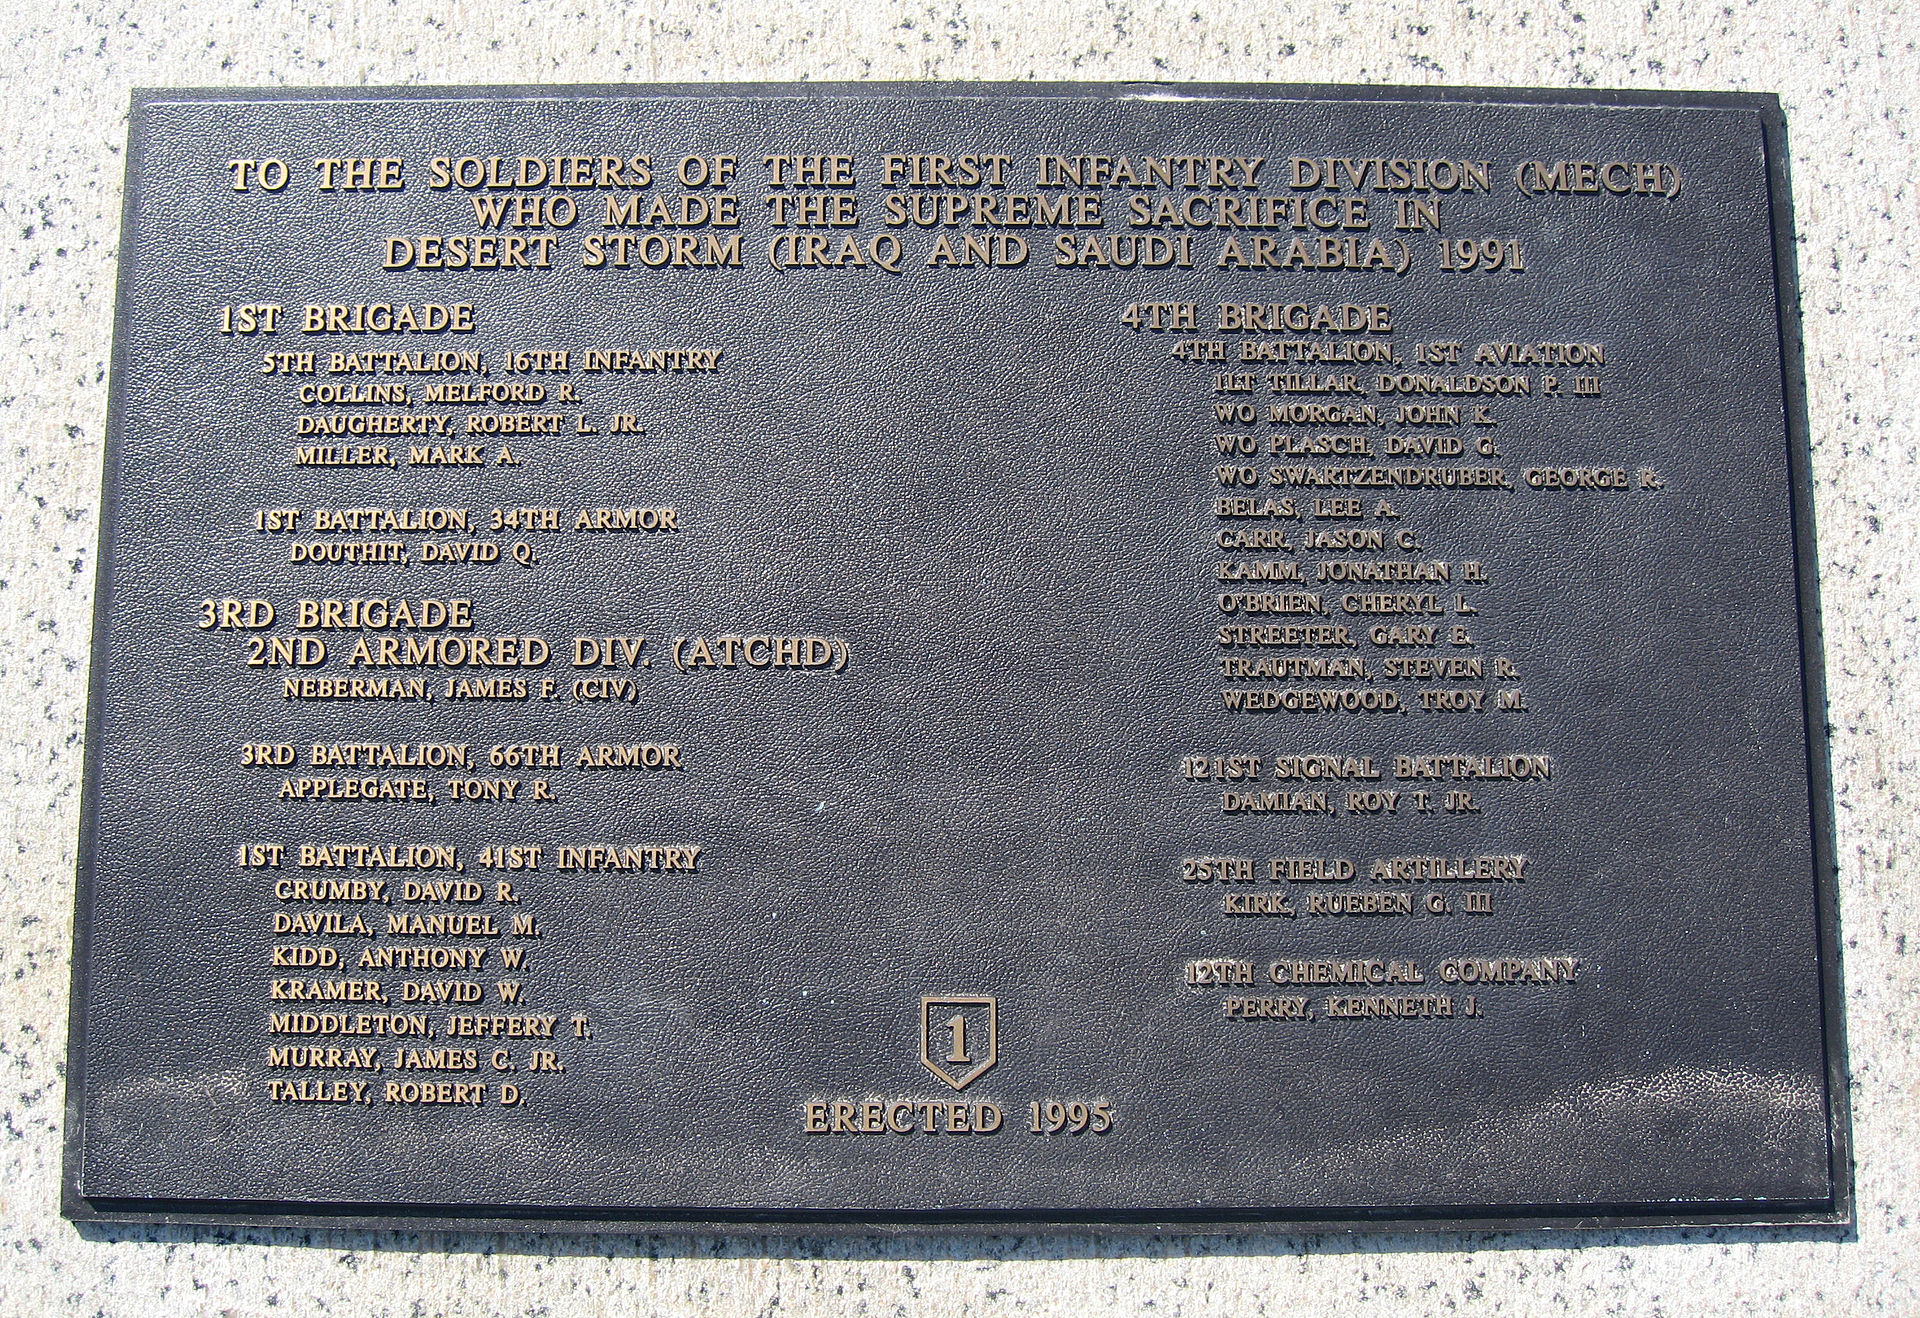 Plaque honoring First Division members who died in Desert Storm. Photo by Leonard J. DeFrancisci, Wikimedia.